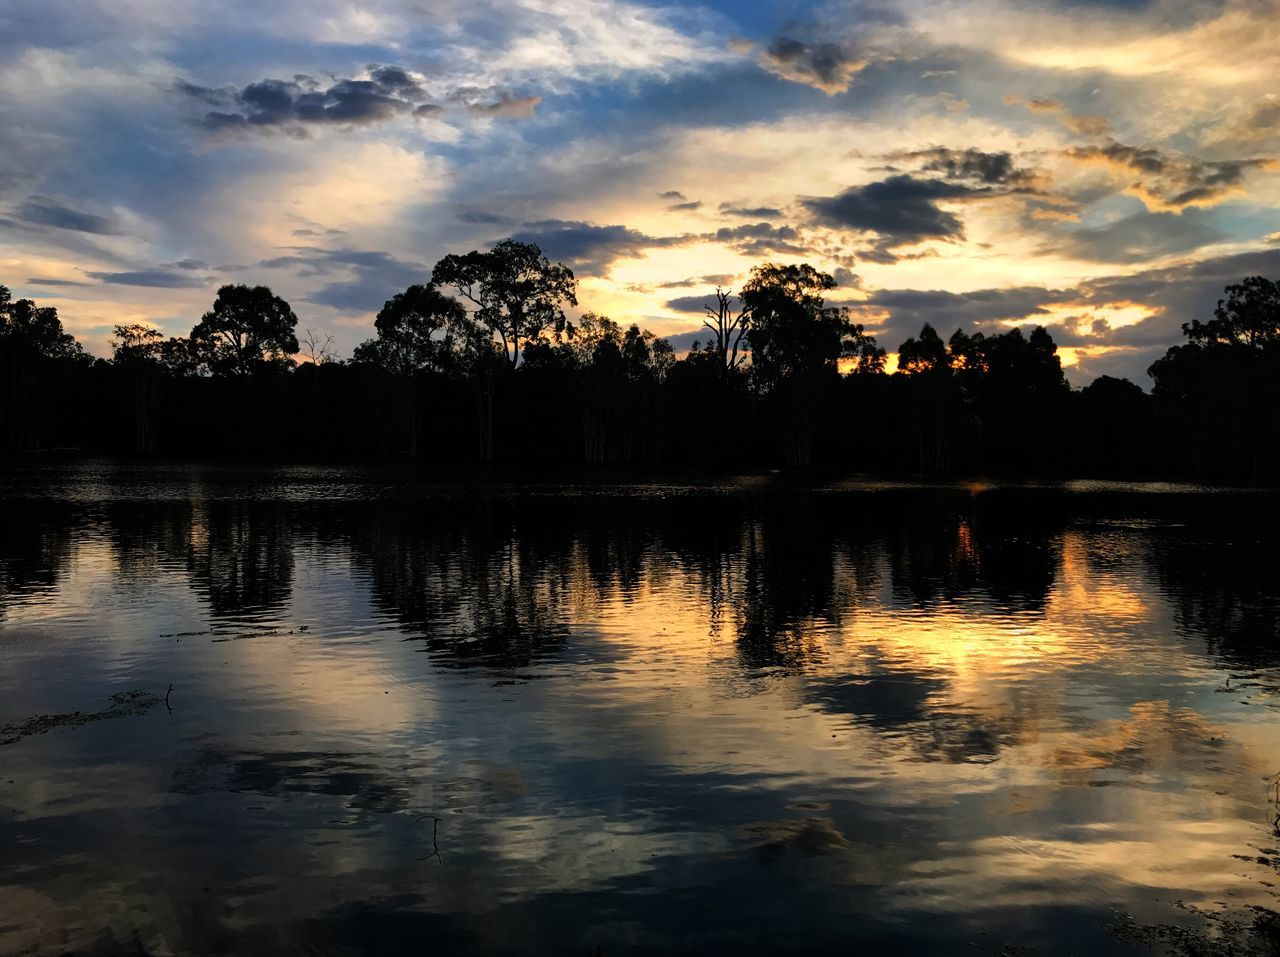 reflection, sunset, water, lake, tree, sky, silhouette, scenics, tranquil scene, tranquility, nature, cloud - sky, beauty in nature, no people, outdoors, waterfront, day